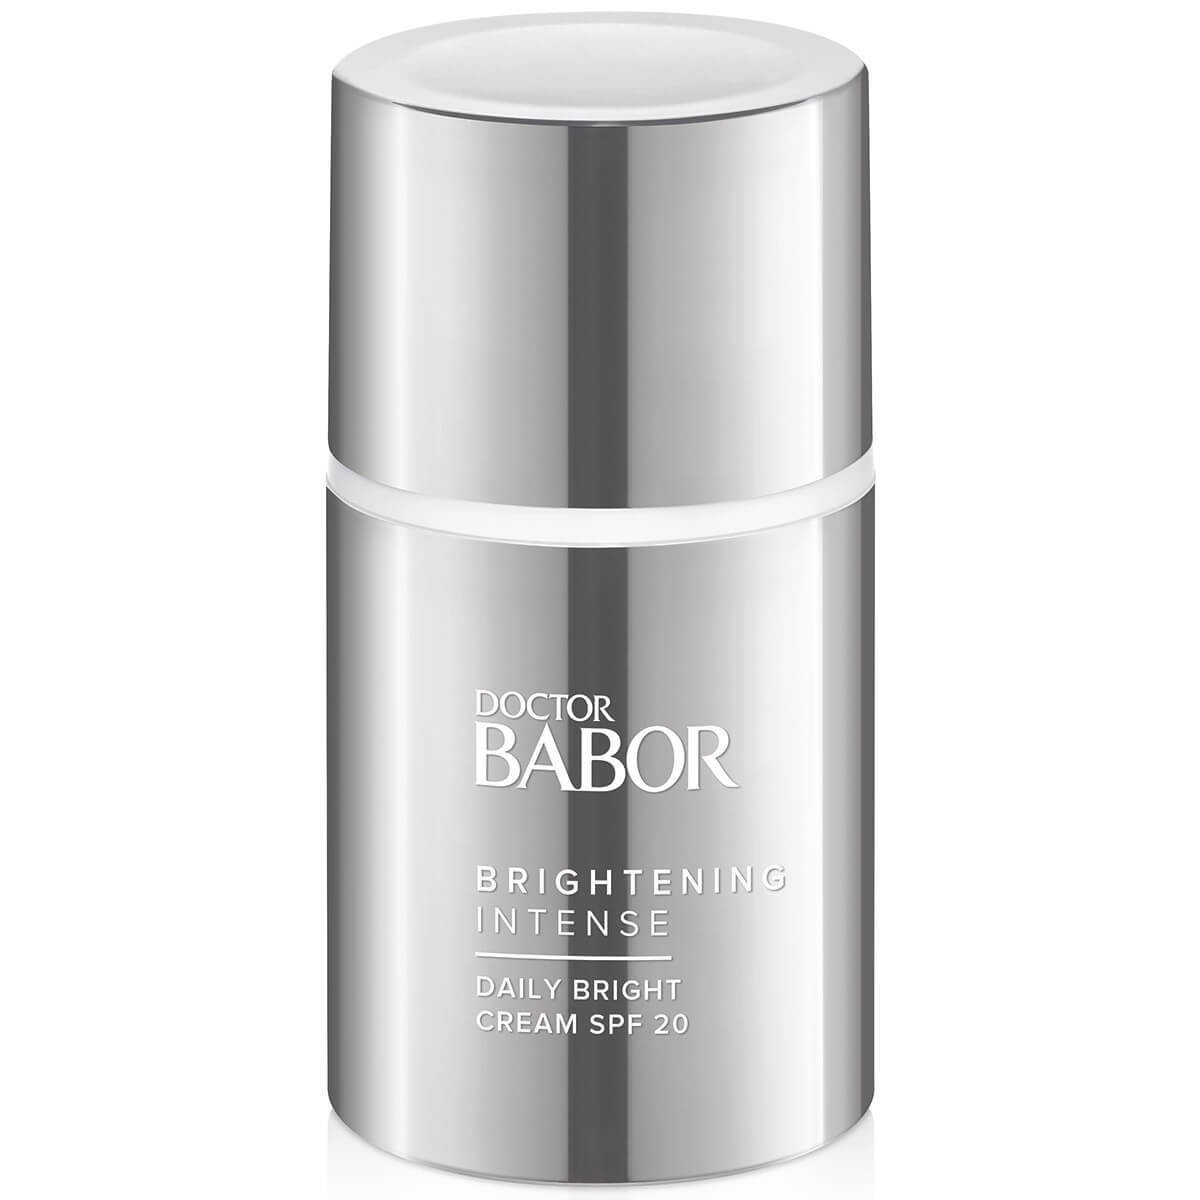 Крем для лица Doctor Babor Brightening Intense Daily Bright Cream SPF 20 50ml